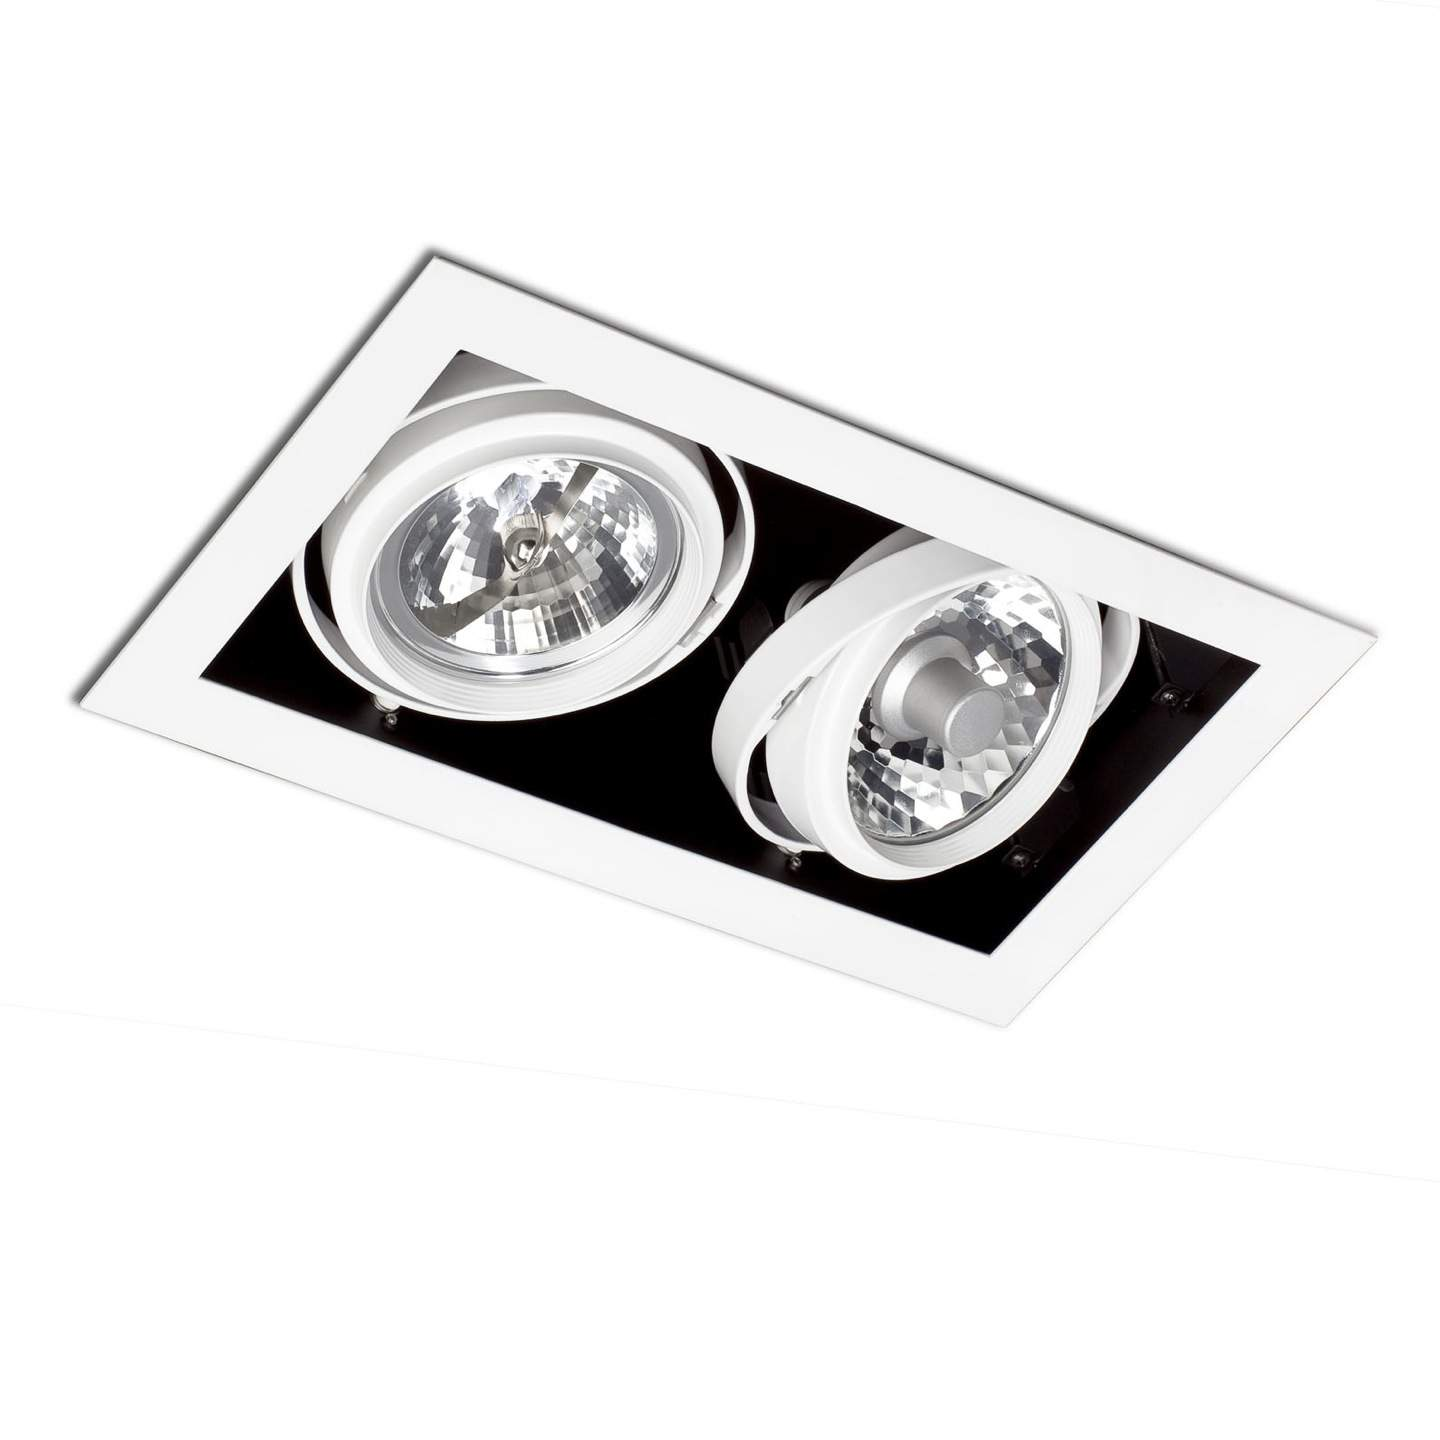 Morris Recessed Ceiling (body without PortaLámpara s) 2xElements Grey